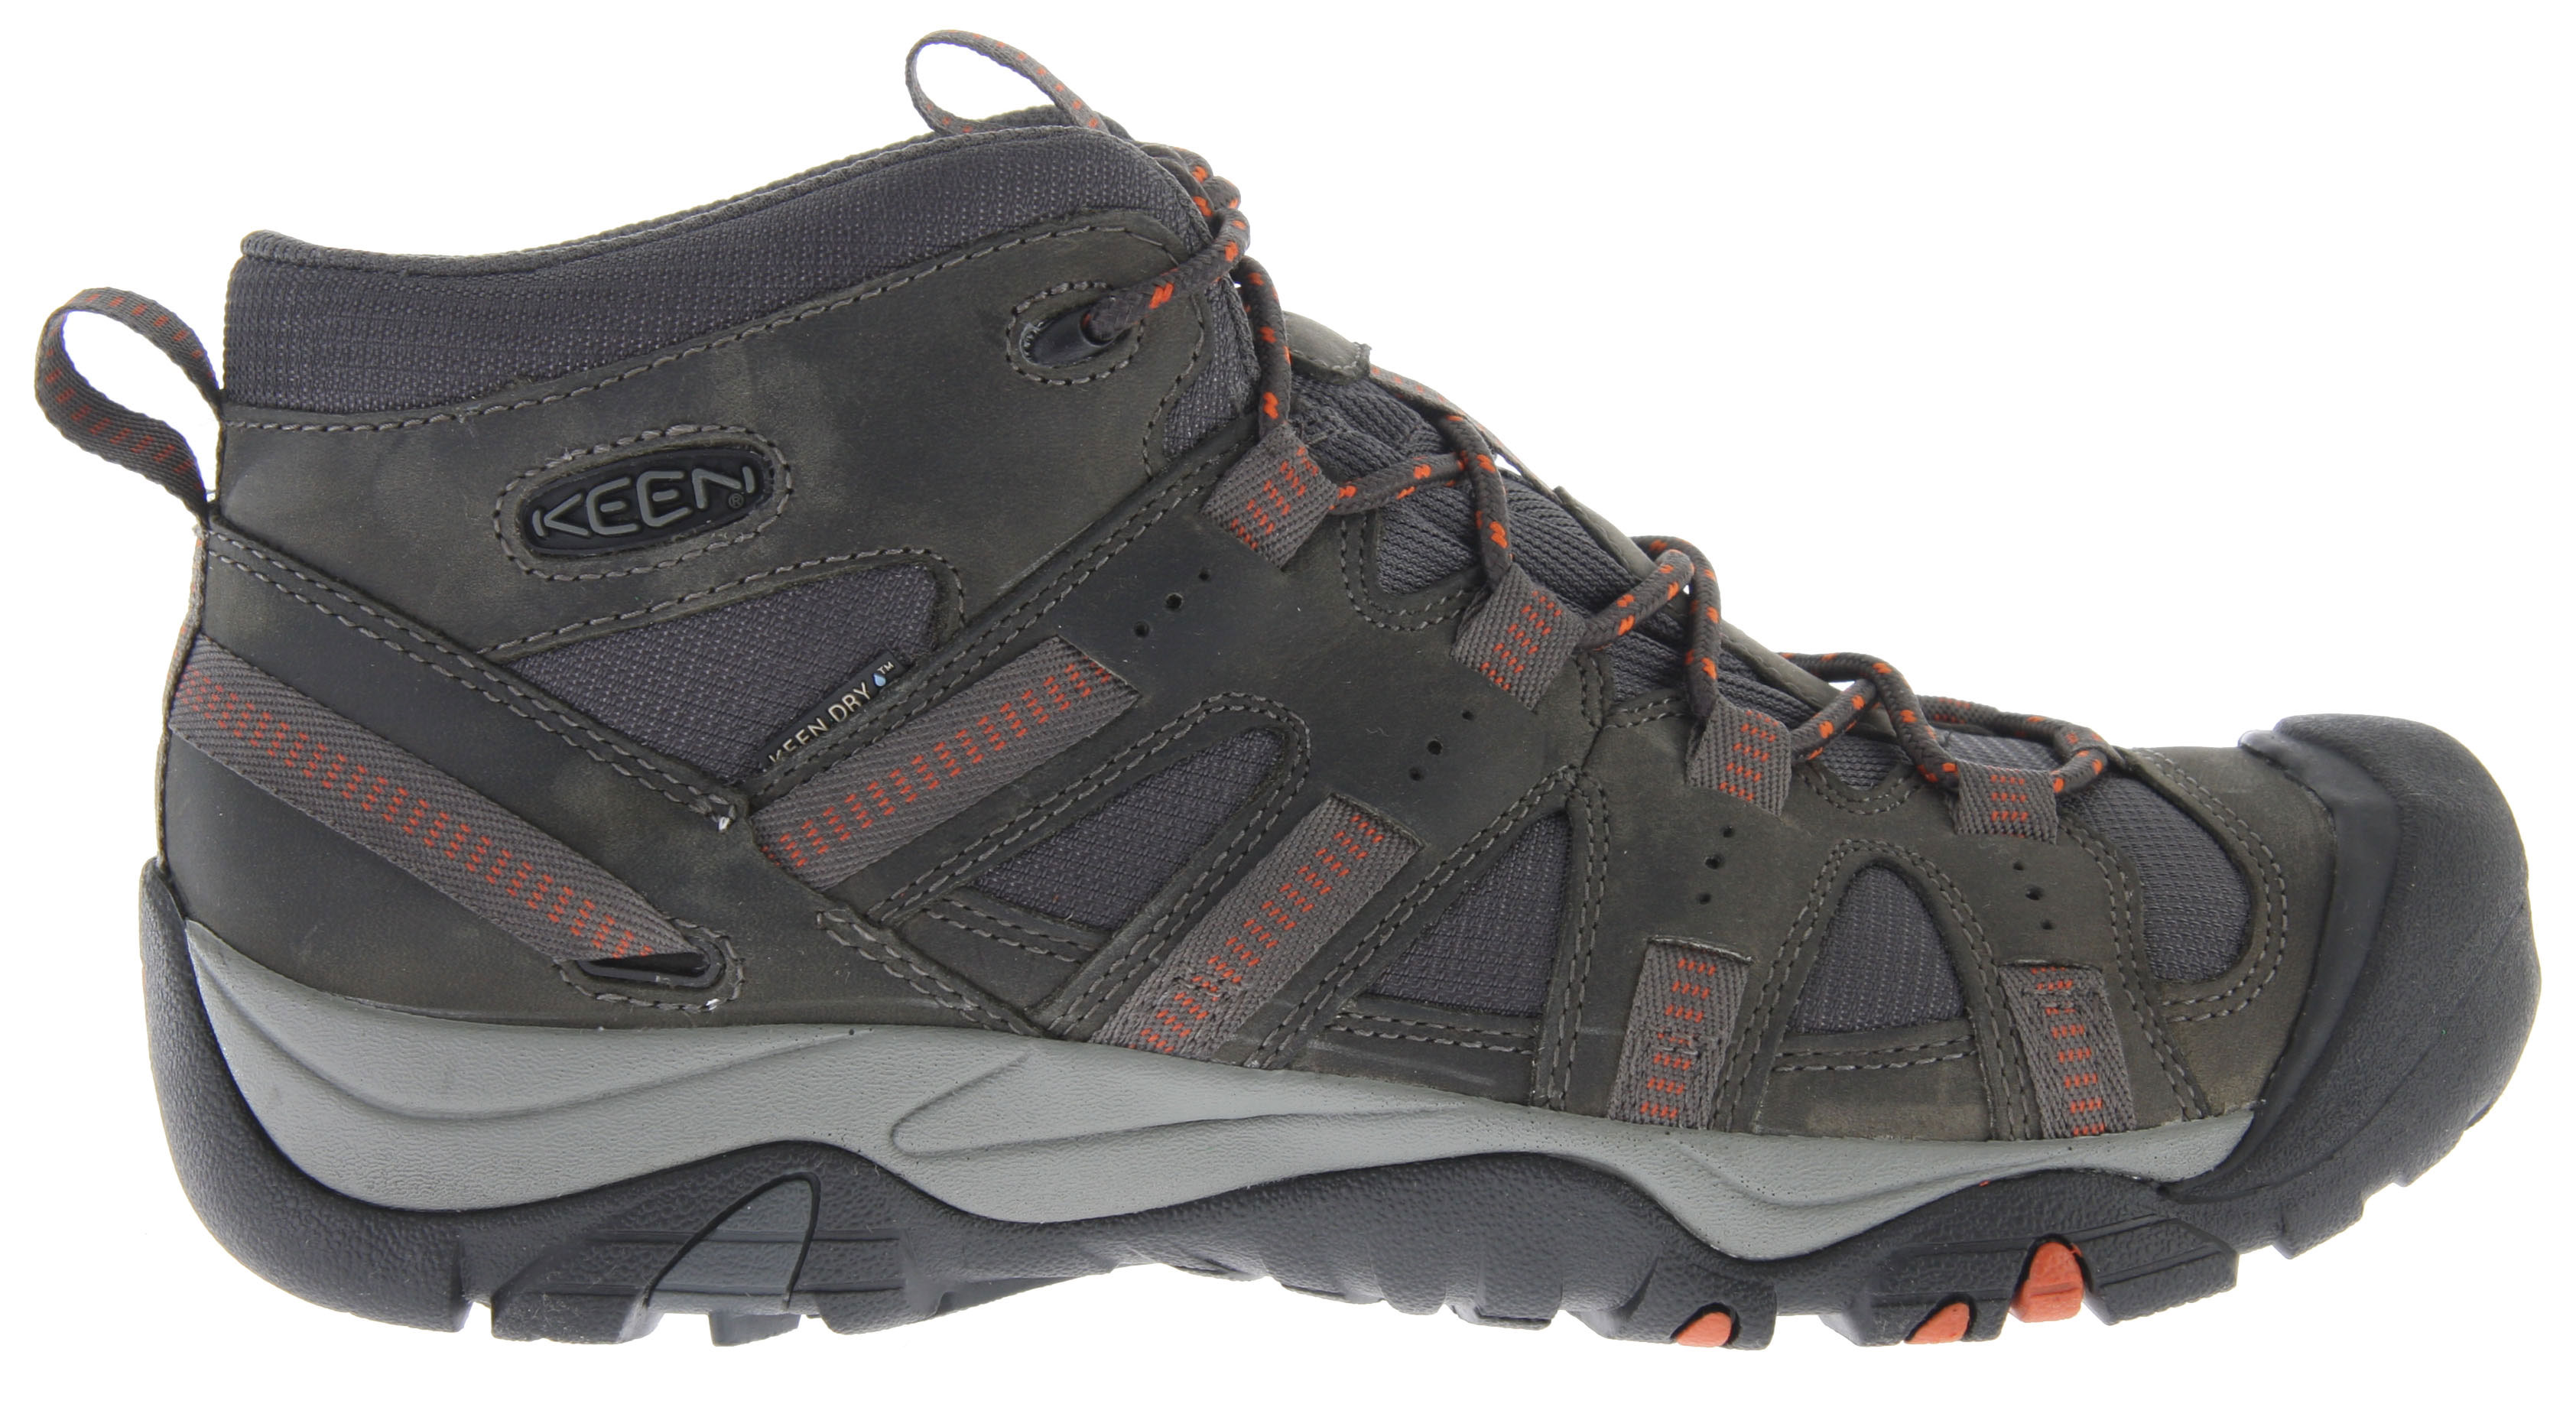 Camp and Hike Key Features of the Keen Siskyou Mid WP Hiking Shoes: Waterproof nubuck leather upper and breathable mesh upper KEEN.DRY waterproof breathable membrane Removable metatomical dual density EVA footbed Single density PU midsole 3mm multi directional lugs Non-marking rubber outsole - $89.95